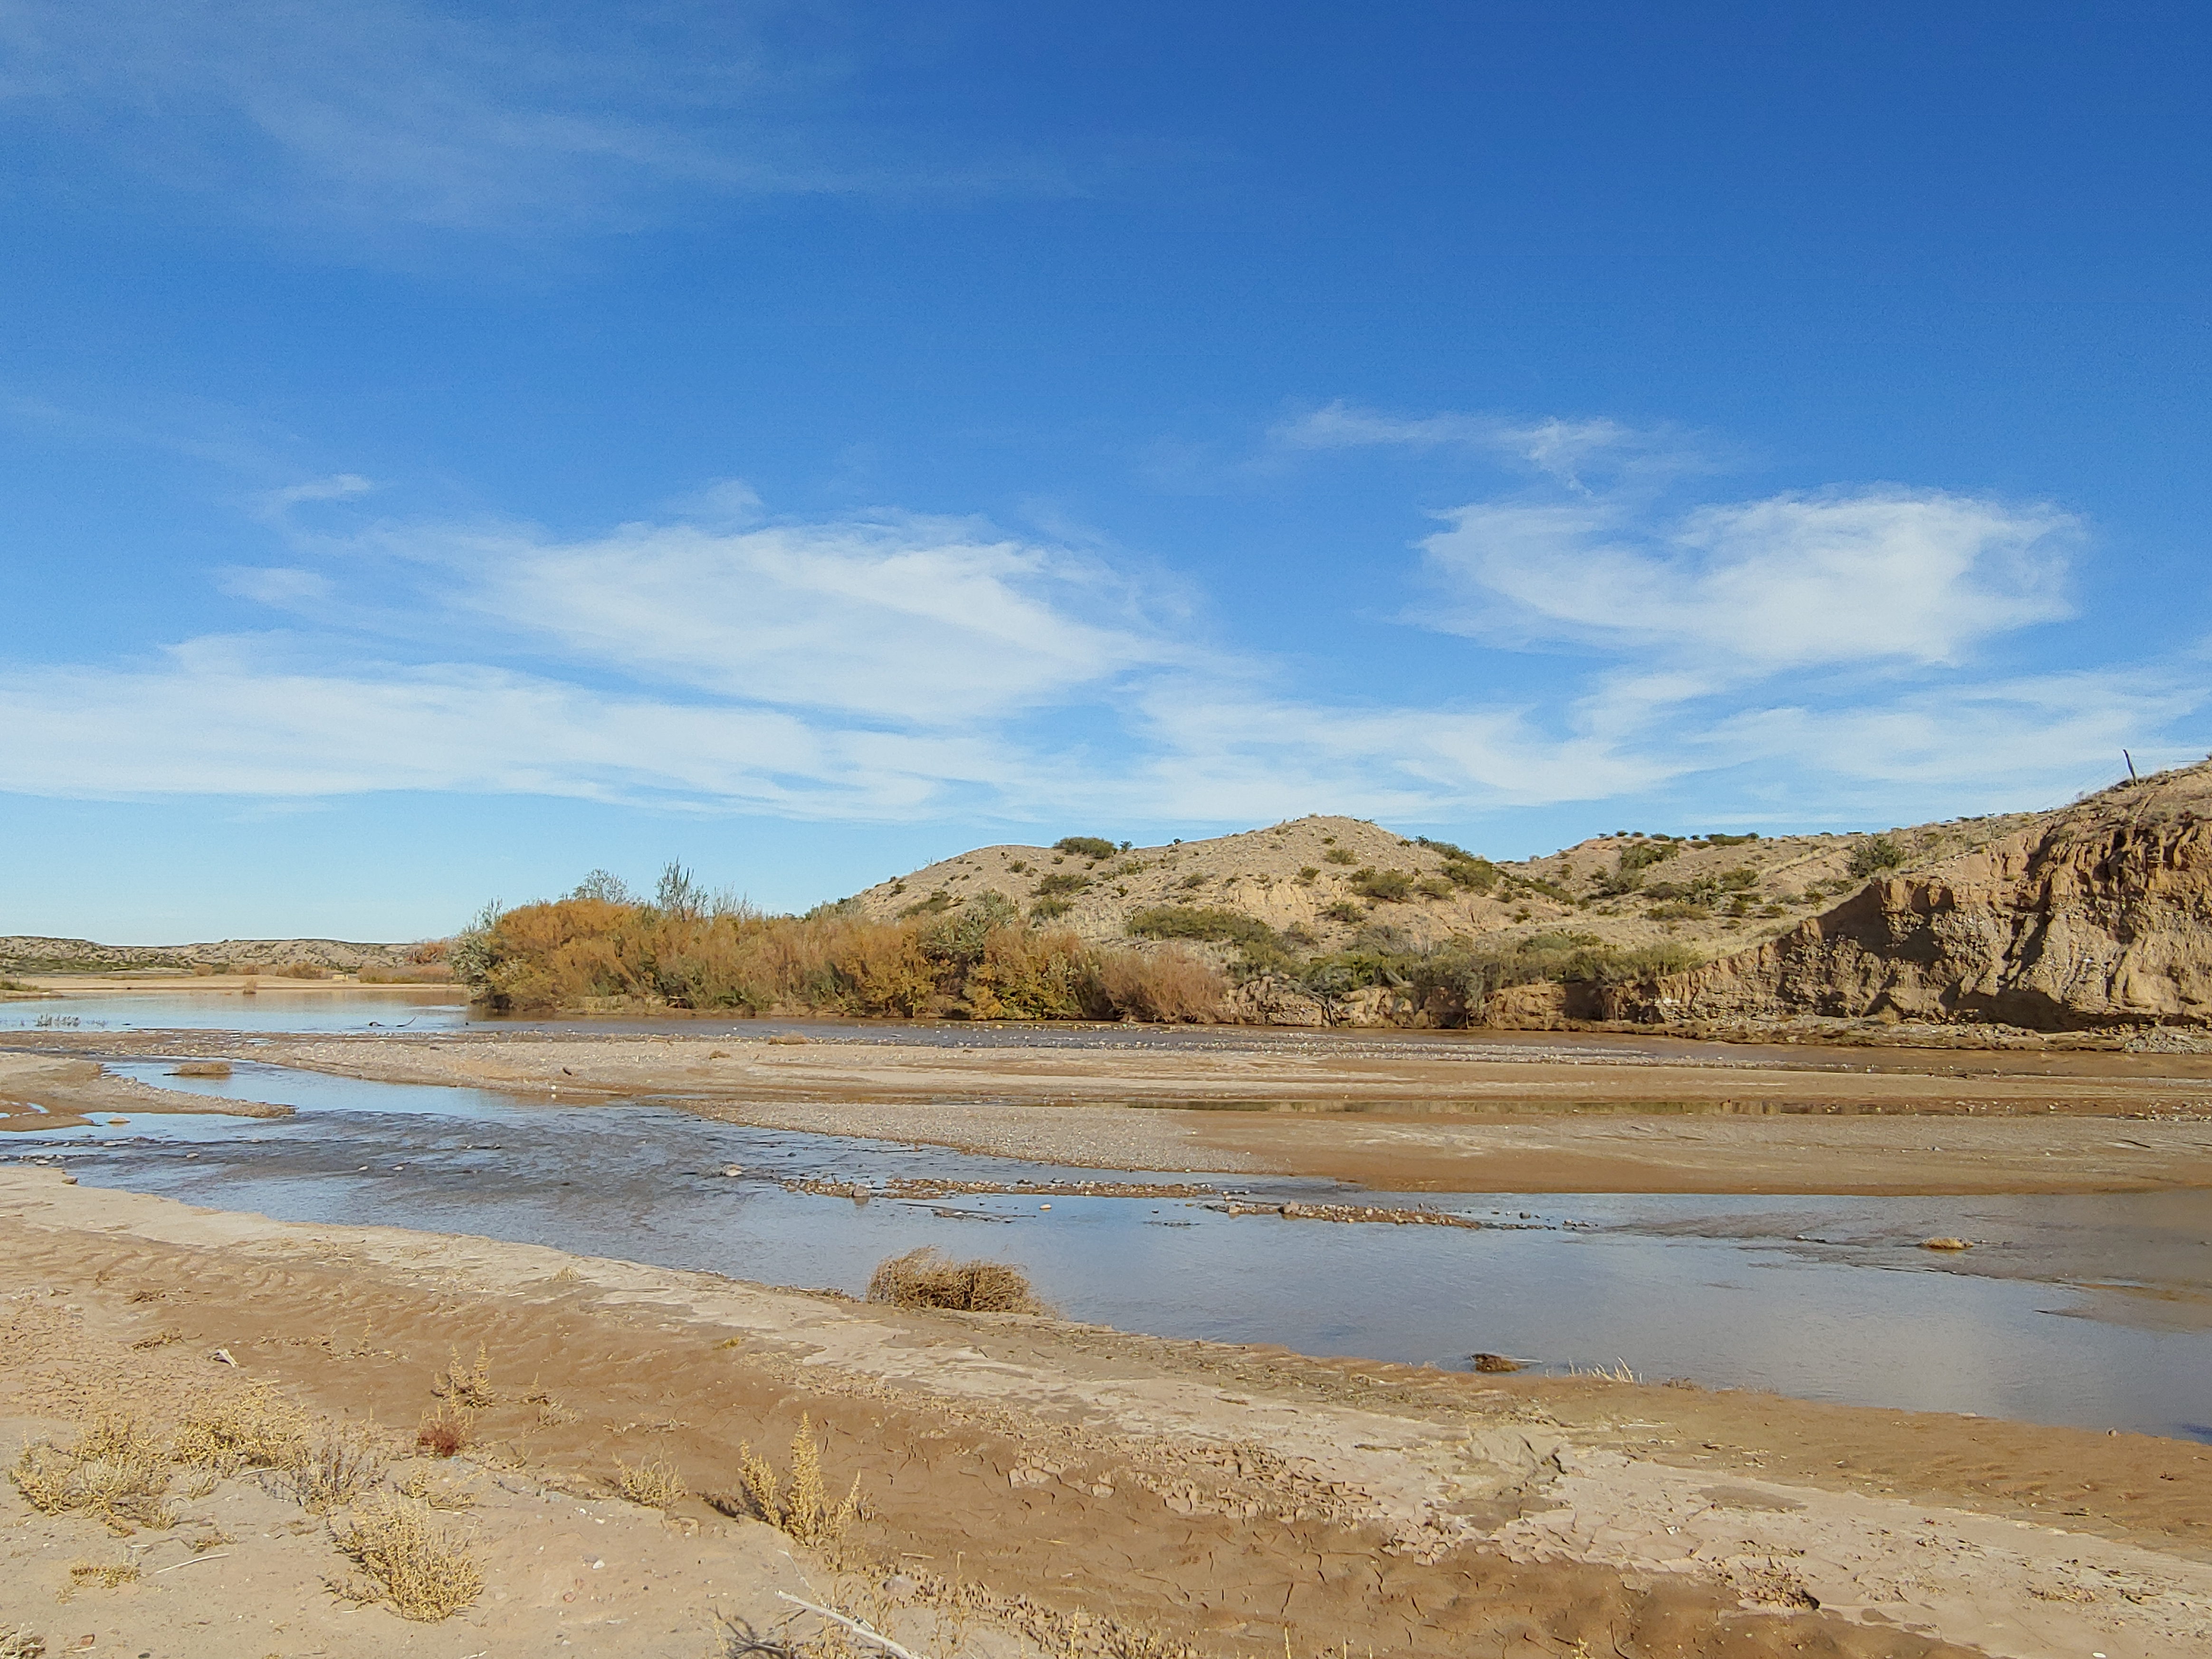 The Middle Rio Grande has experienced dramatic hydrologic and geomorphic changes over the past century, which have resulted in reduced range and abundance of the endangered Rio Grande silvery minnow.